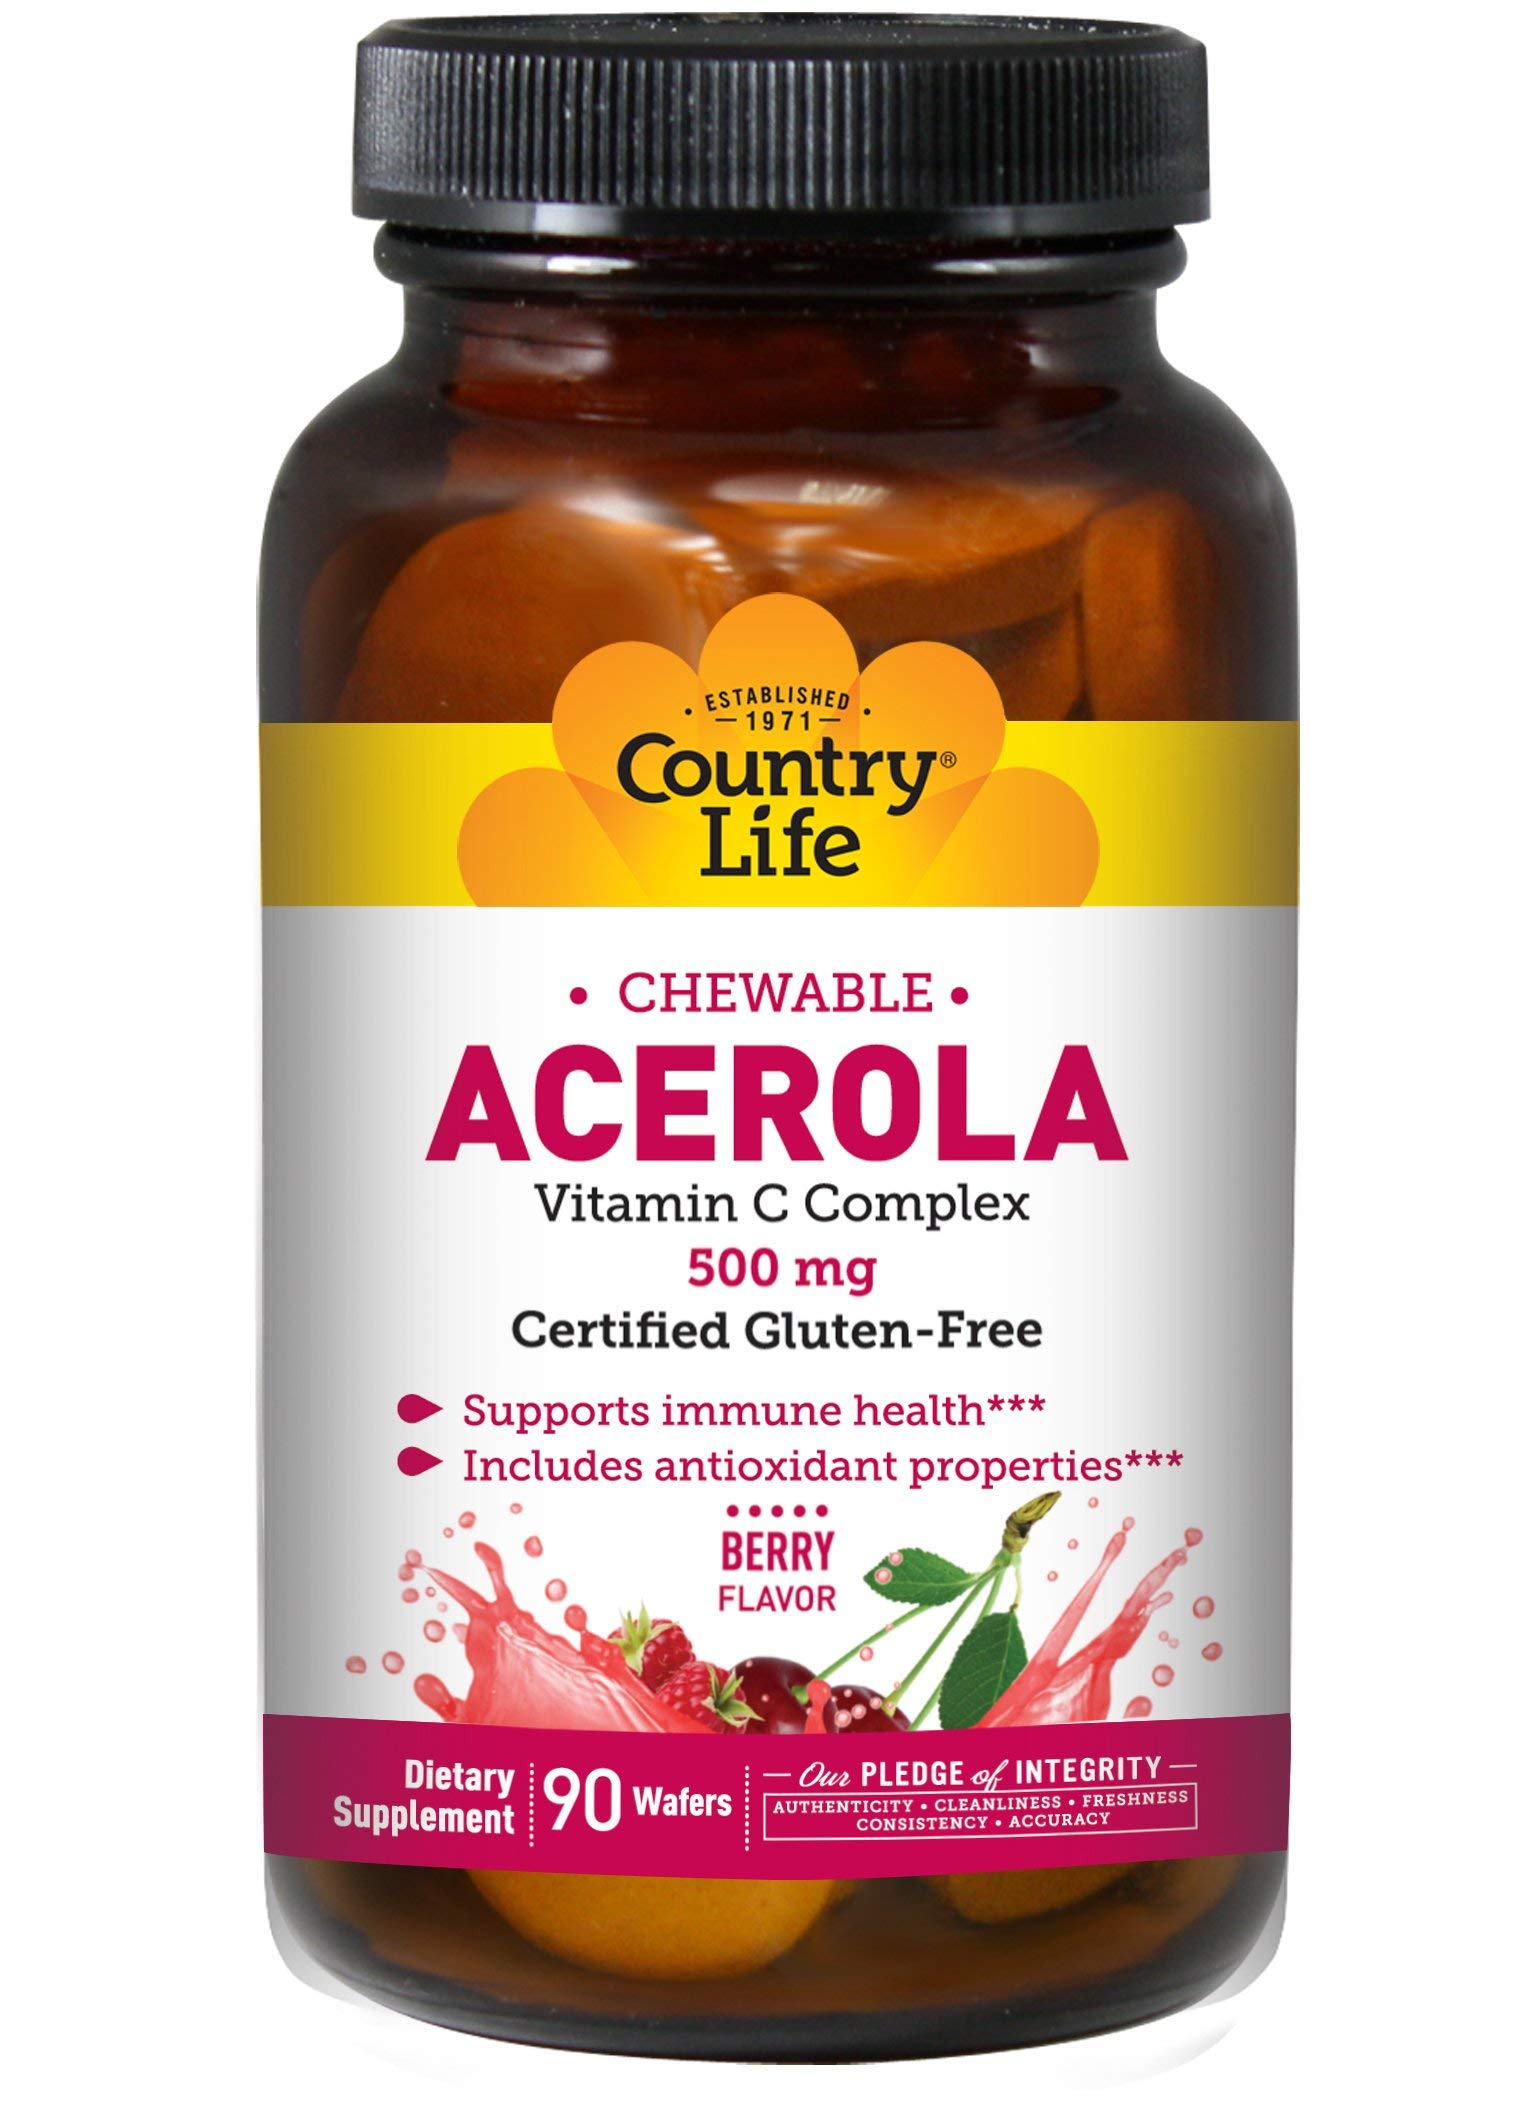 Country Life Acerola 500mg Chewable Vitamin C Complex Natural Antioxidants & Citrus Bioflavonoids for Powerful Immune Health Support - Gluten-Free, Vegan Berry Flavor - 90 Wafers